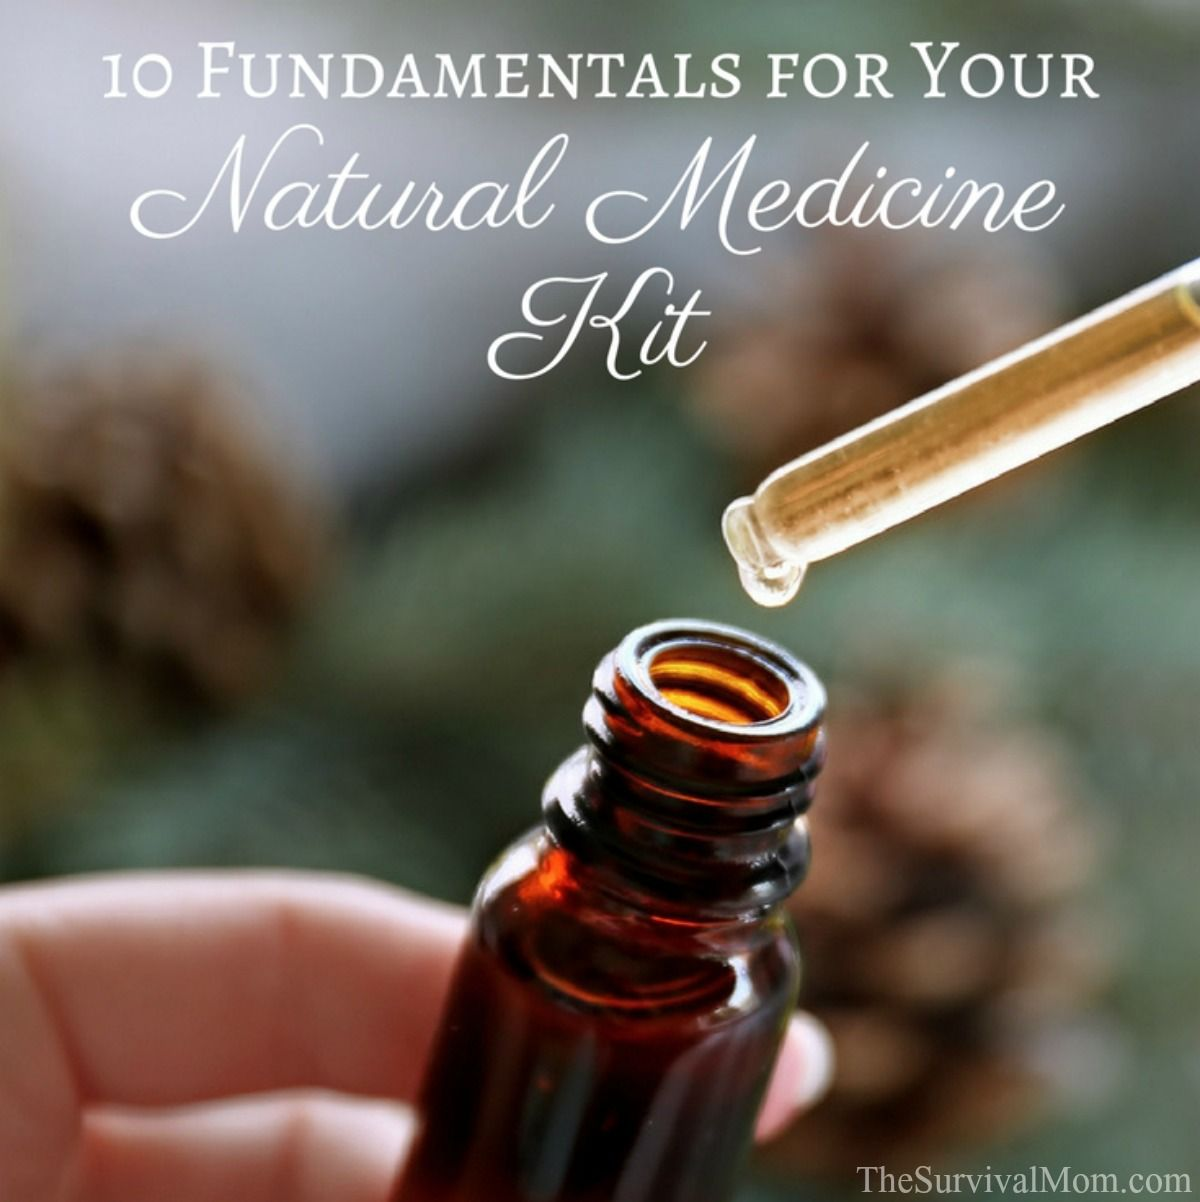 10 Fundamentals for Your Natural Medicine Kit via The Survival Mom